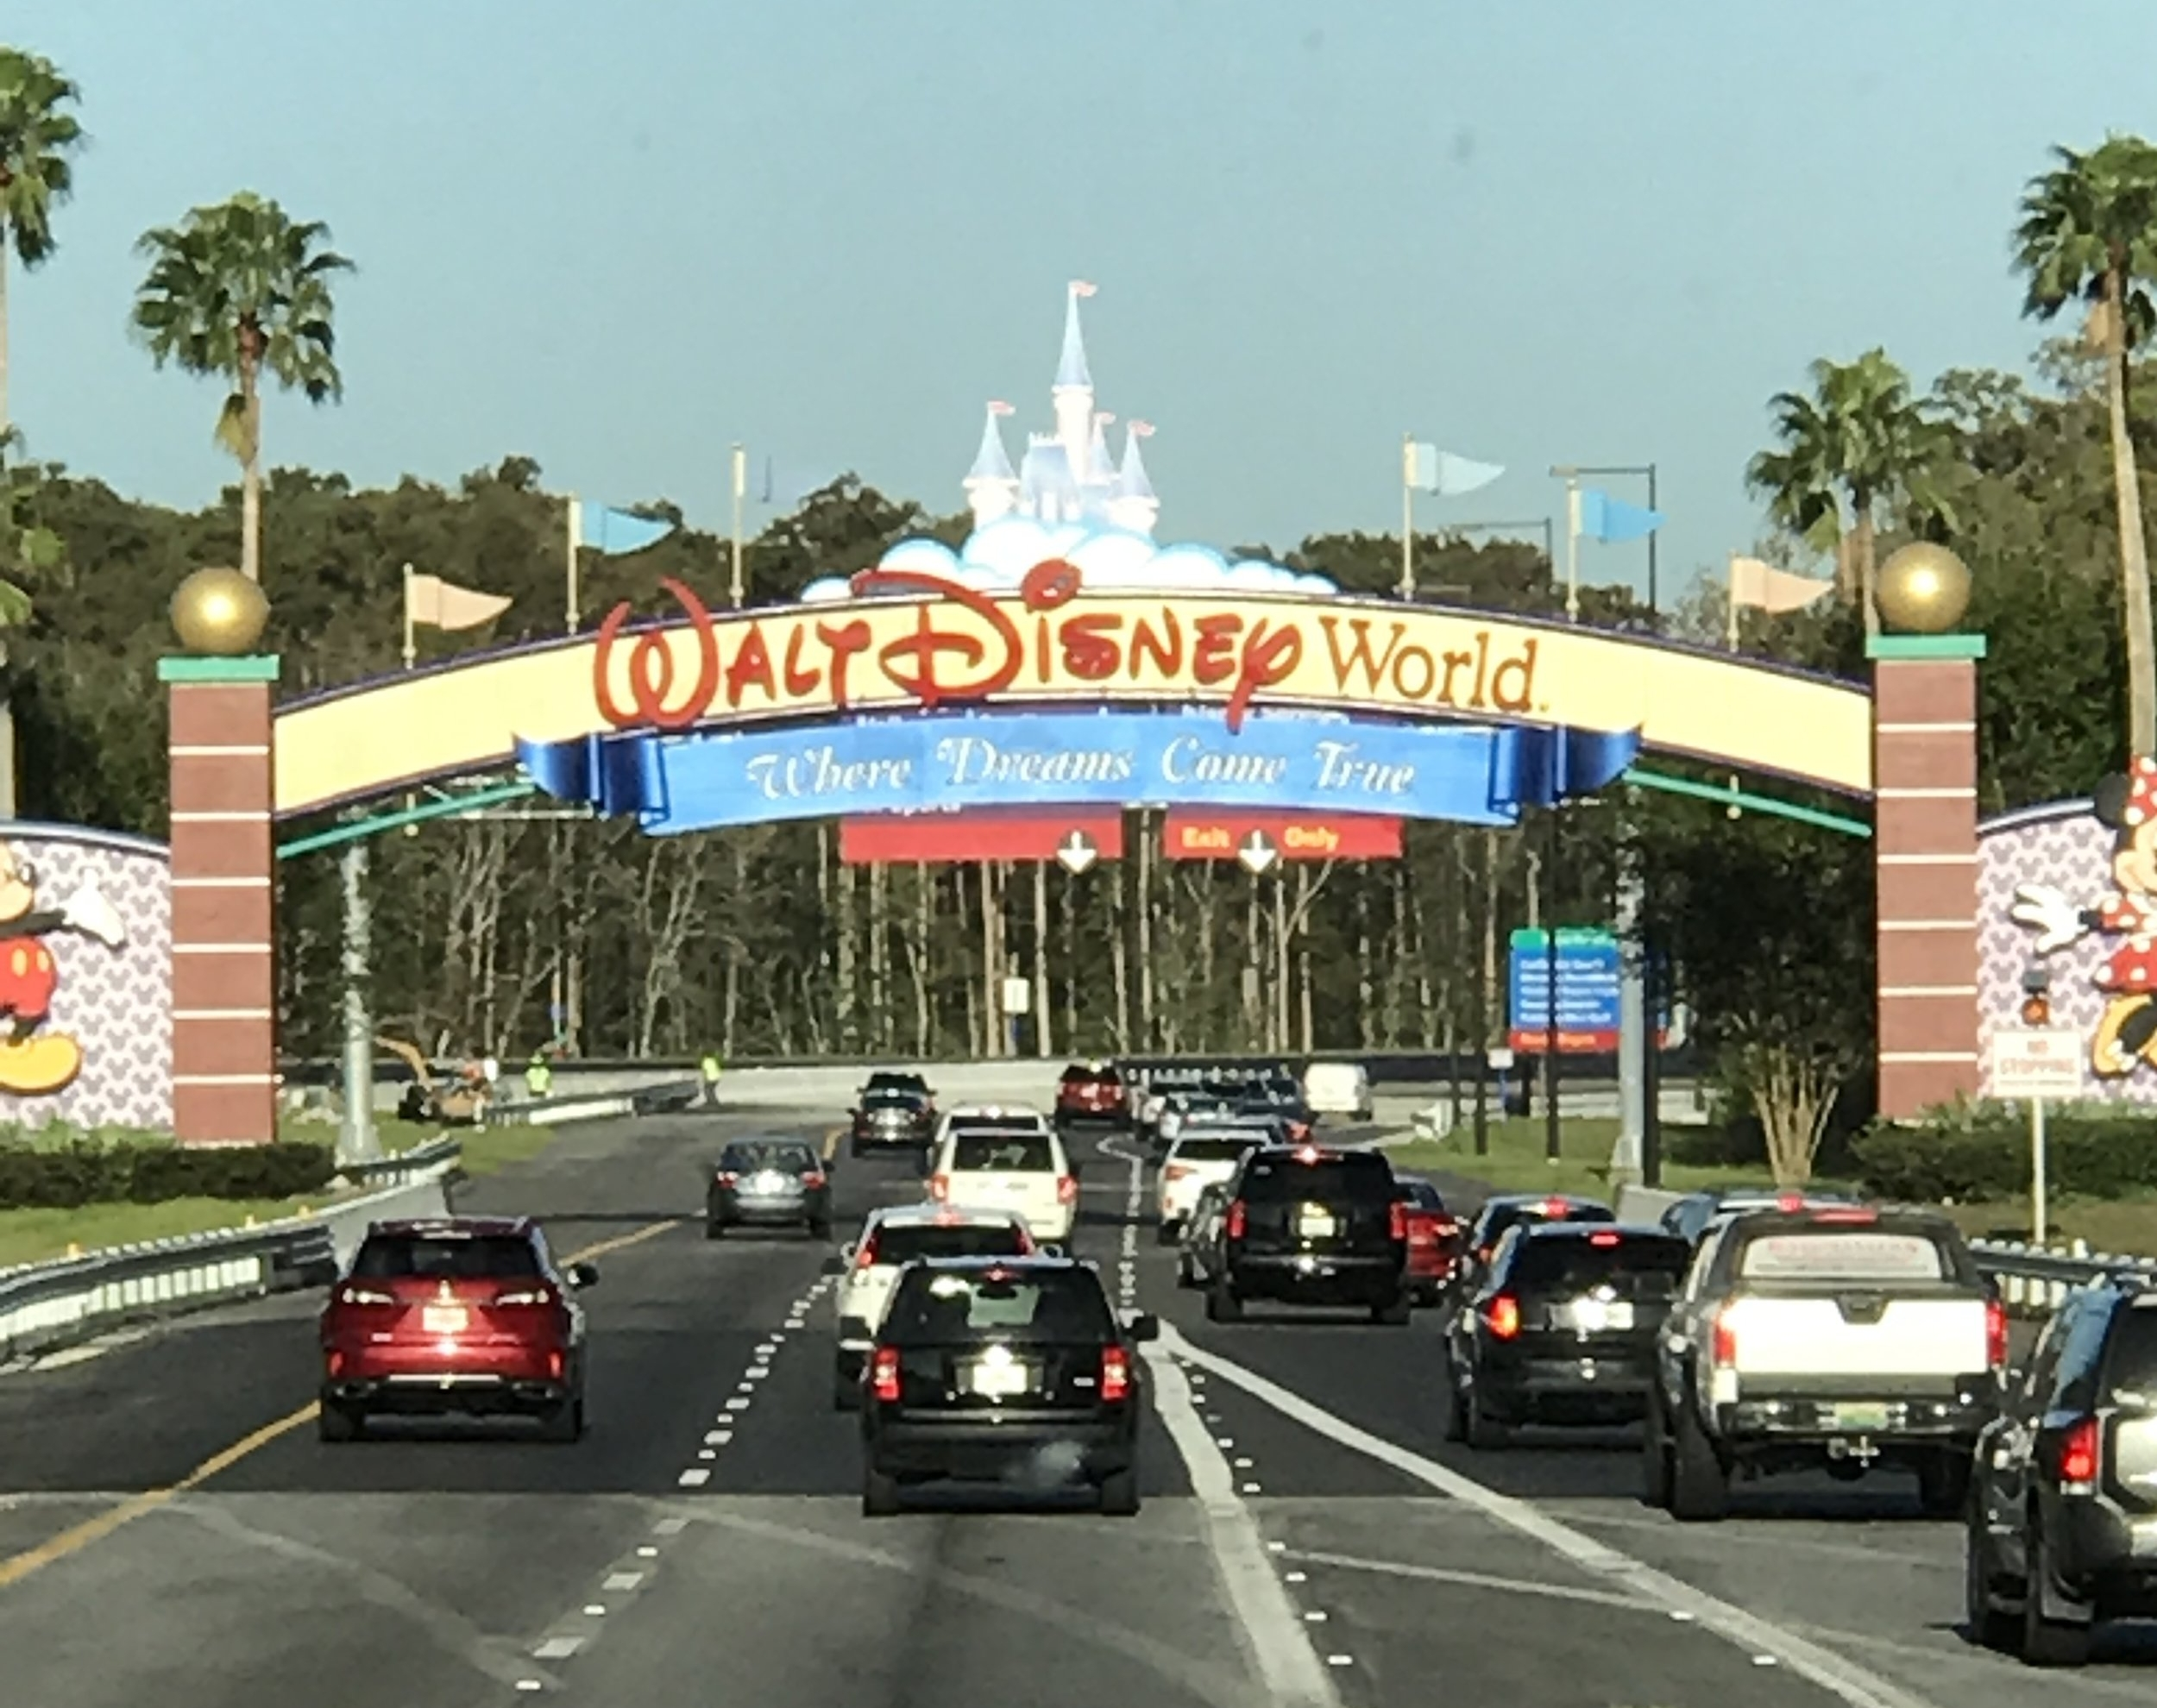 Disney World Entrance .jpg